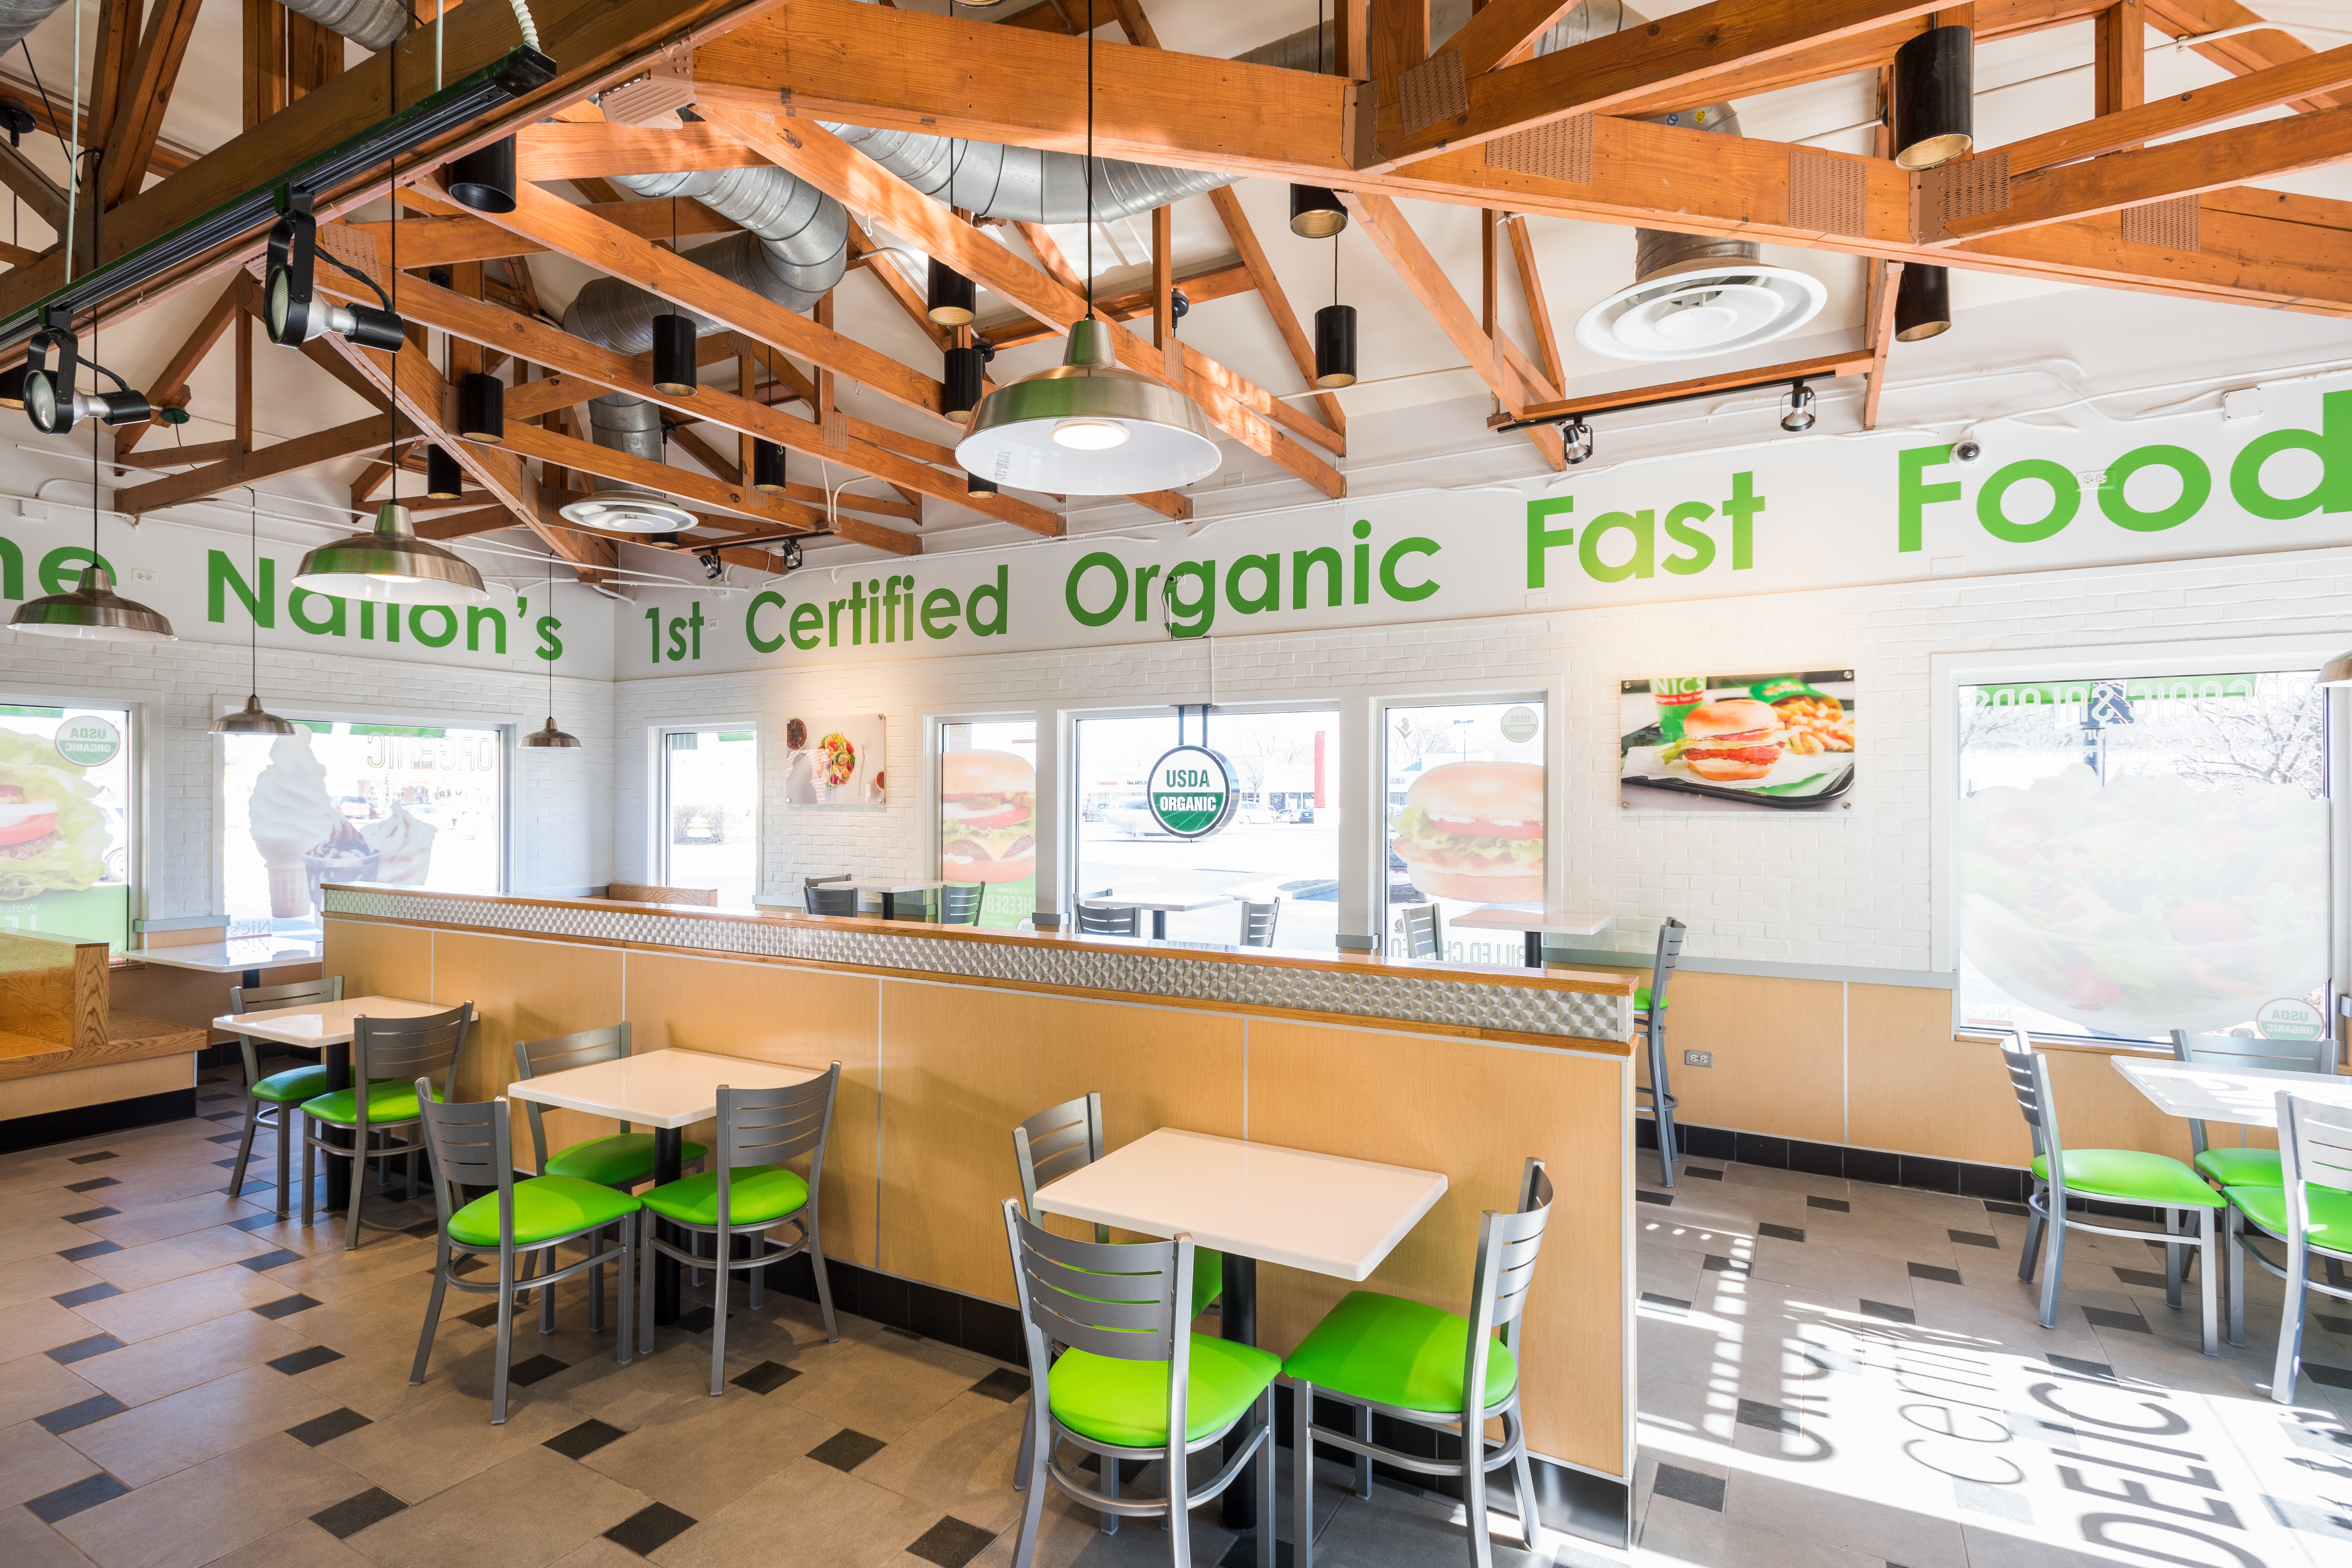 Tour The Very First Nicu0027s Organic Fast Food In Chicagou0027s Suburbs